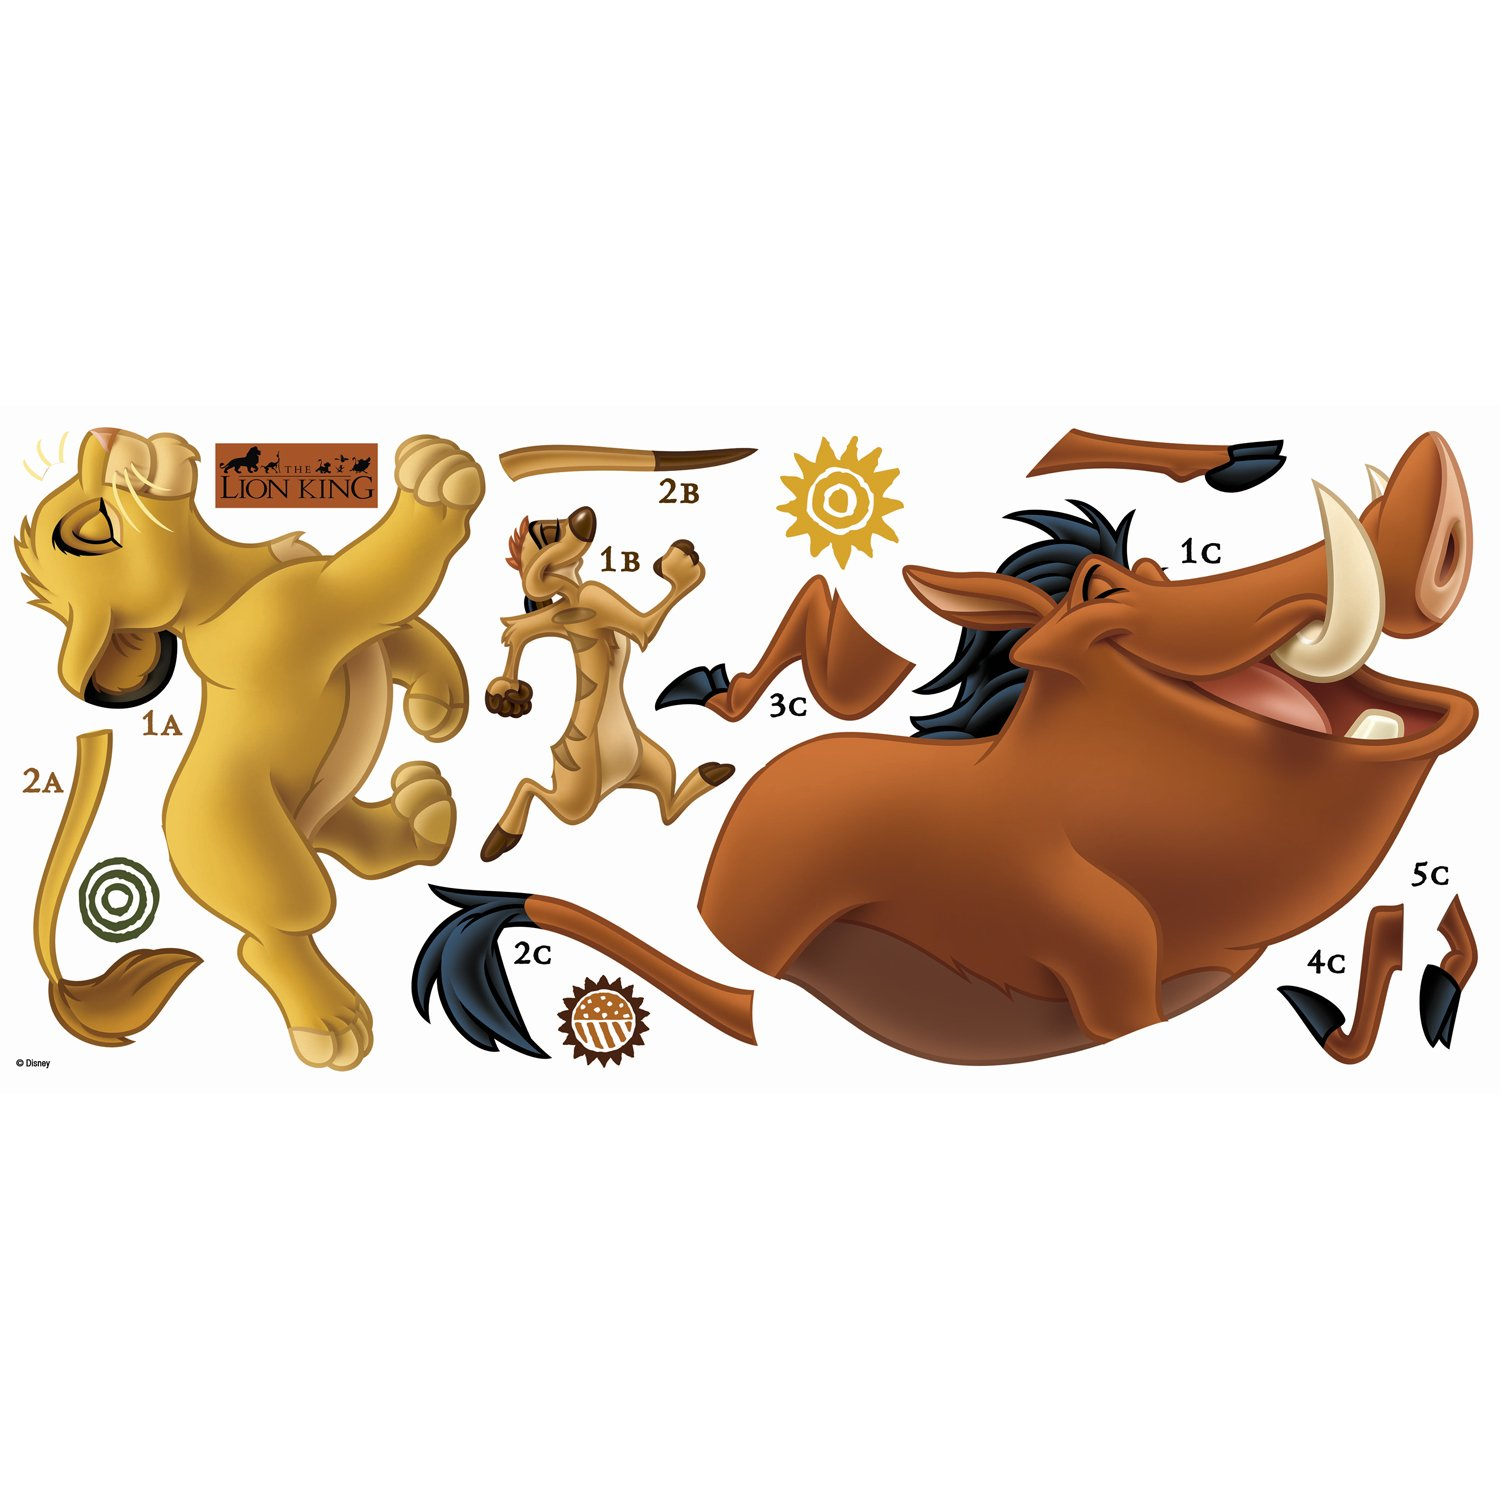 RoomMates The Lion King Peel and Stick Giant Wall Decals by RoomMates (Image #1)